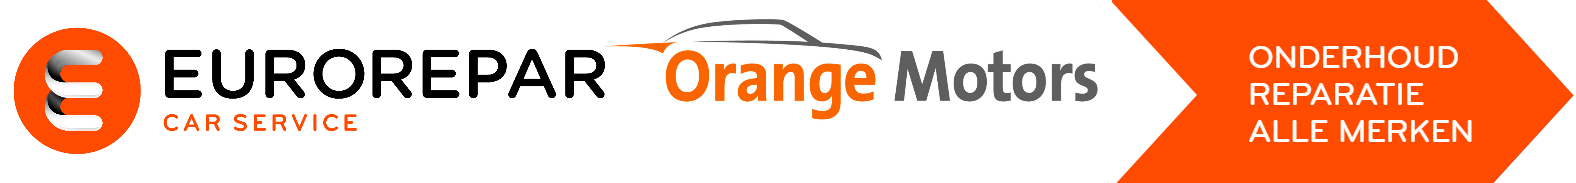 Eurorepar Car Service Orange Motors